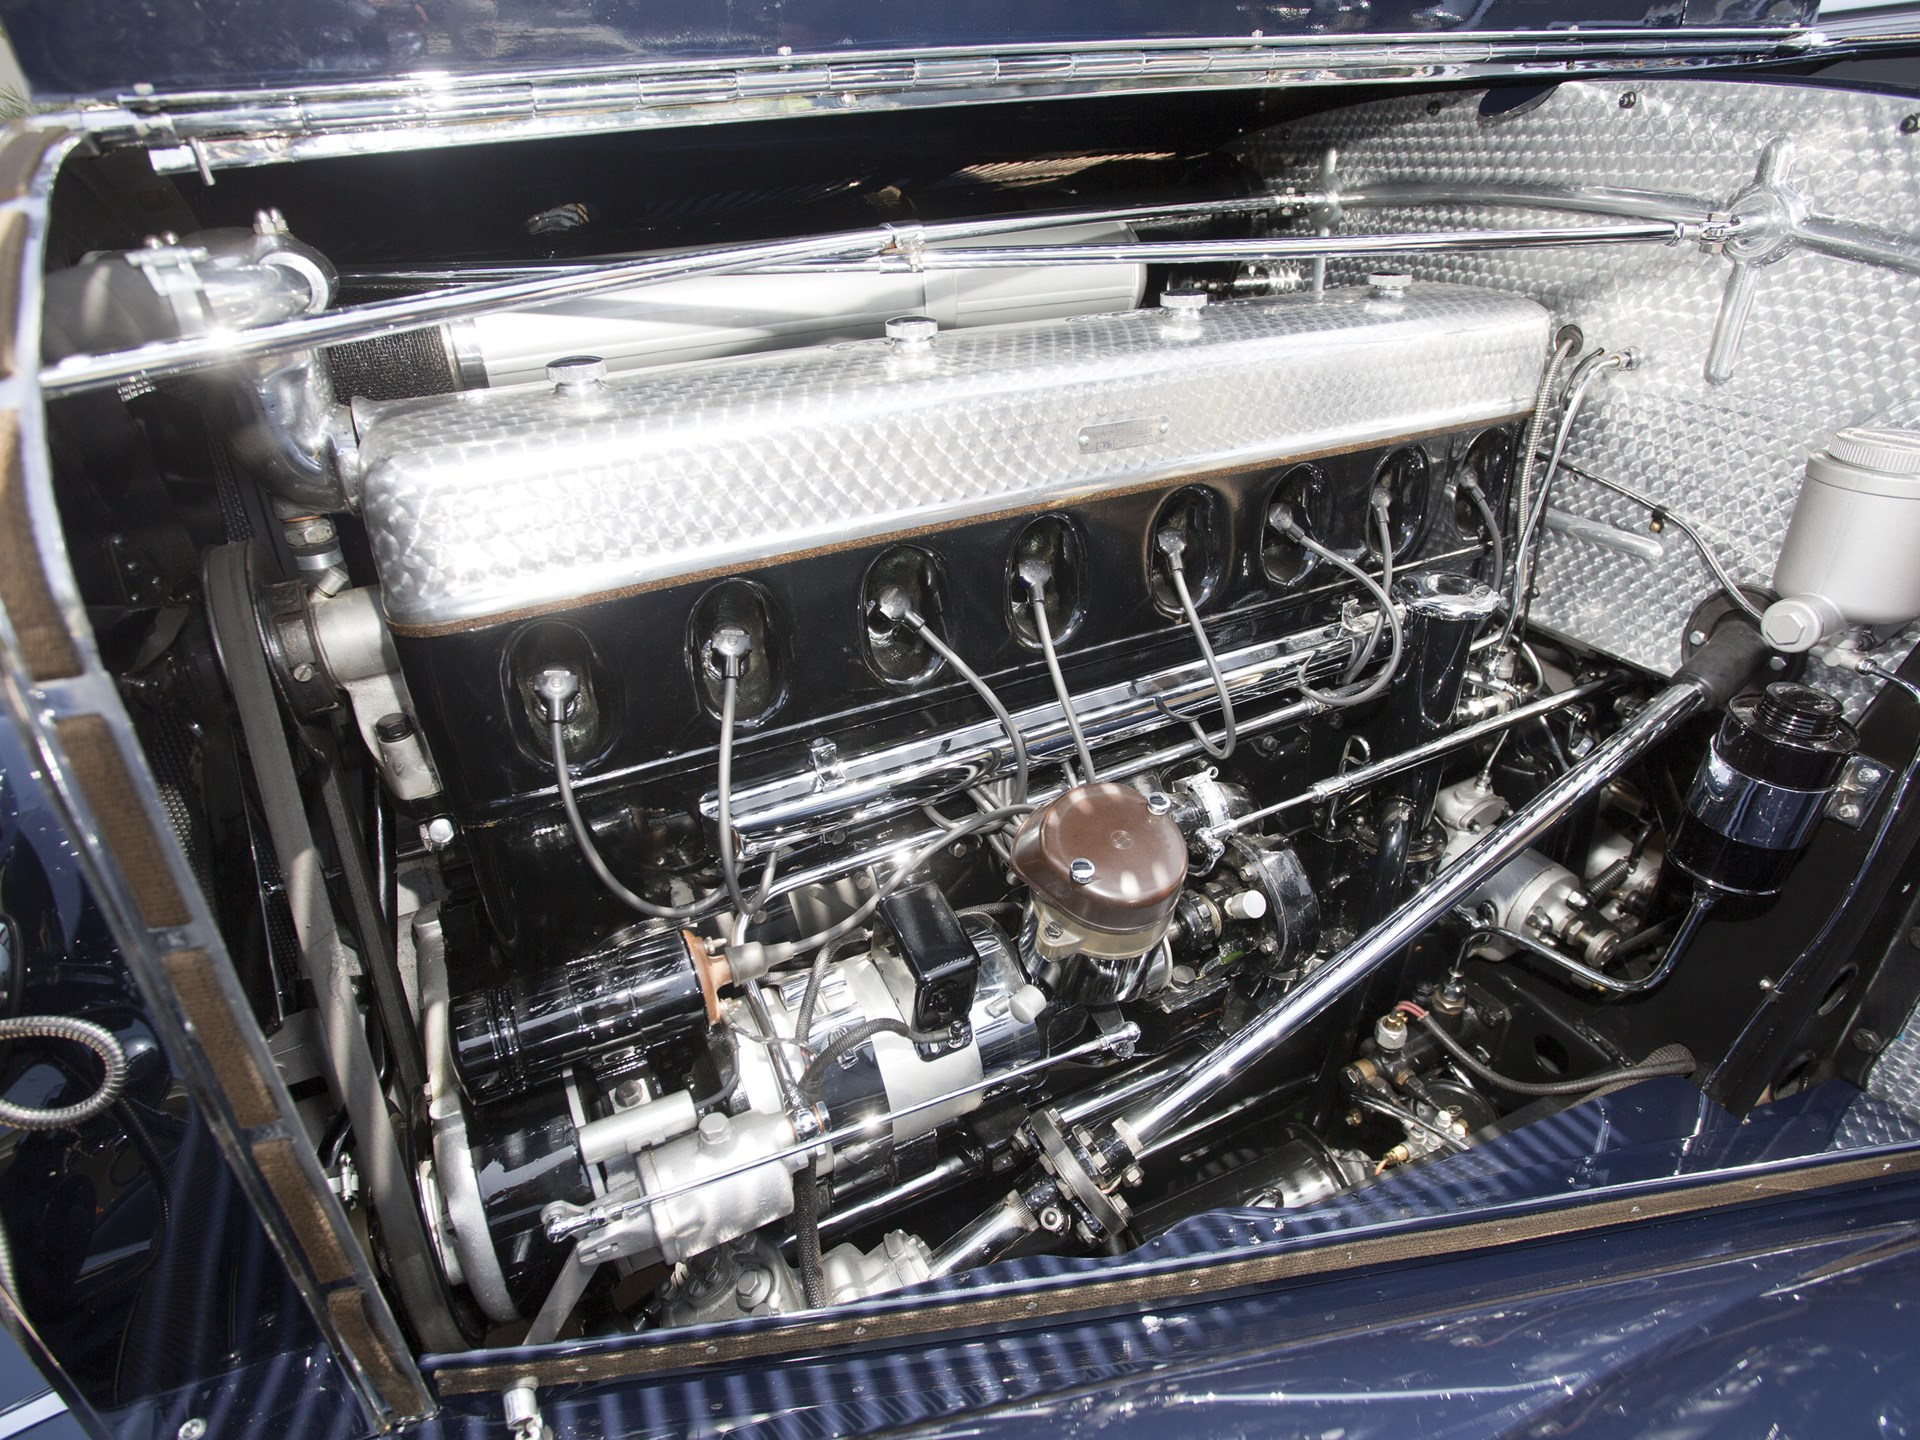 1939 Mercedes-Benz 540k engine